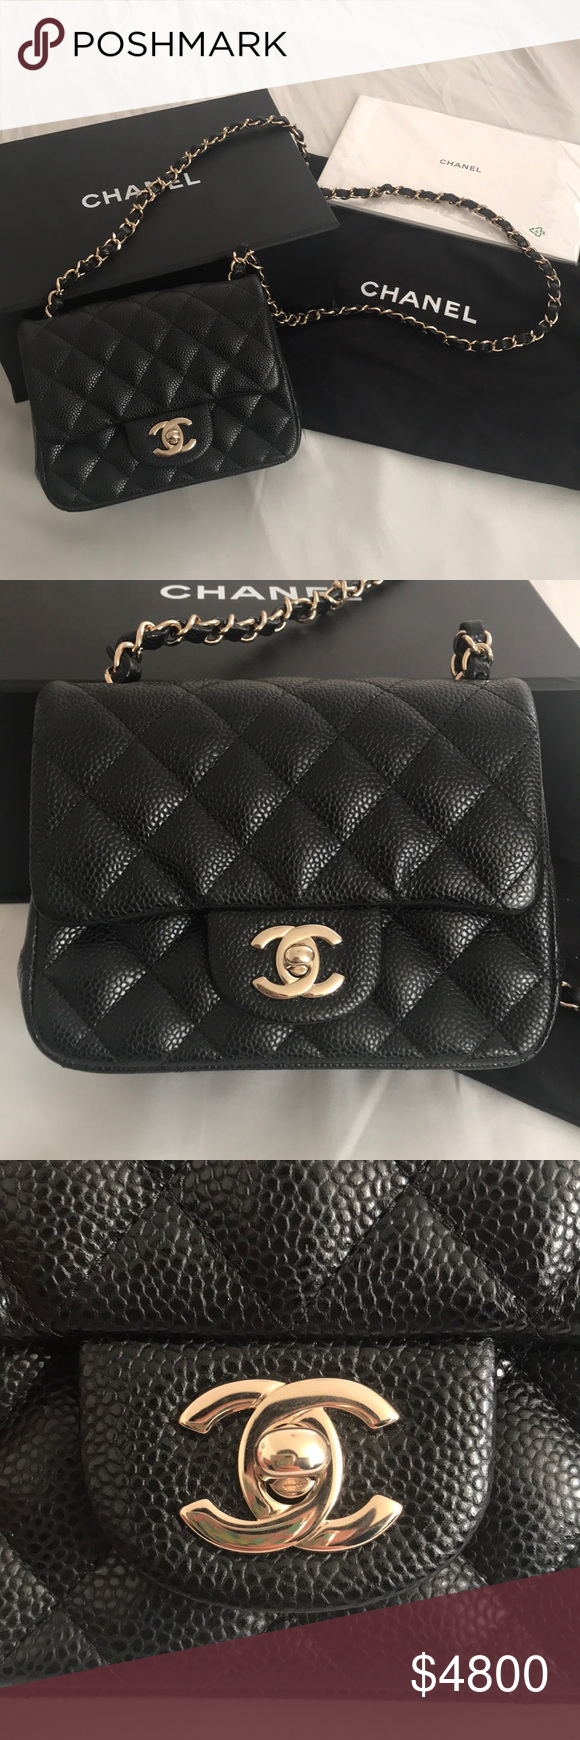 ecaa8194b9a78b CHANEL Mini Square Flap in Black Caviar 100% authentic and BRAND NEW Chanel  Mini Square